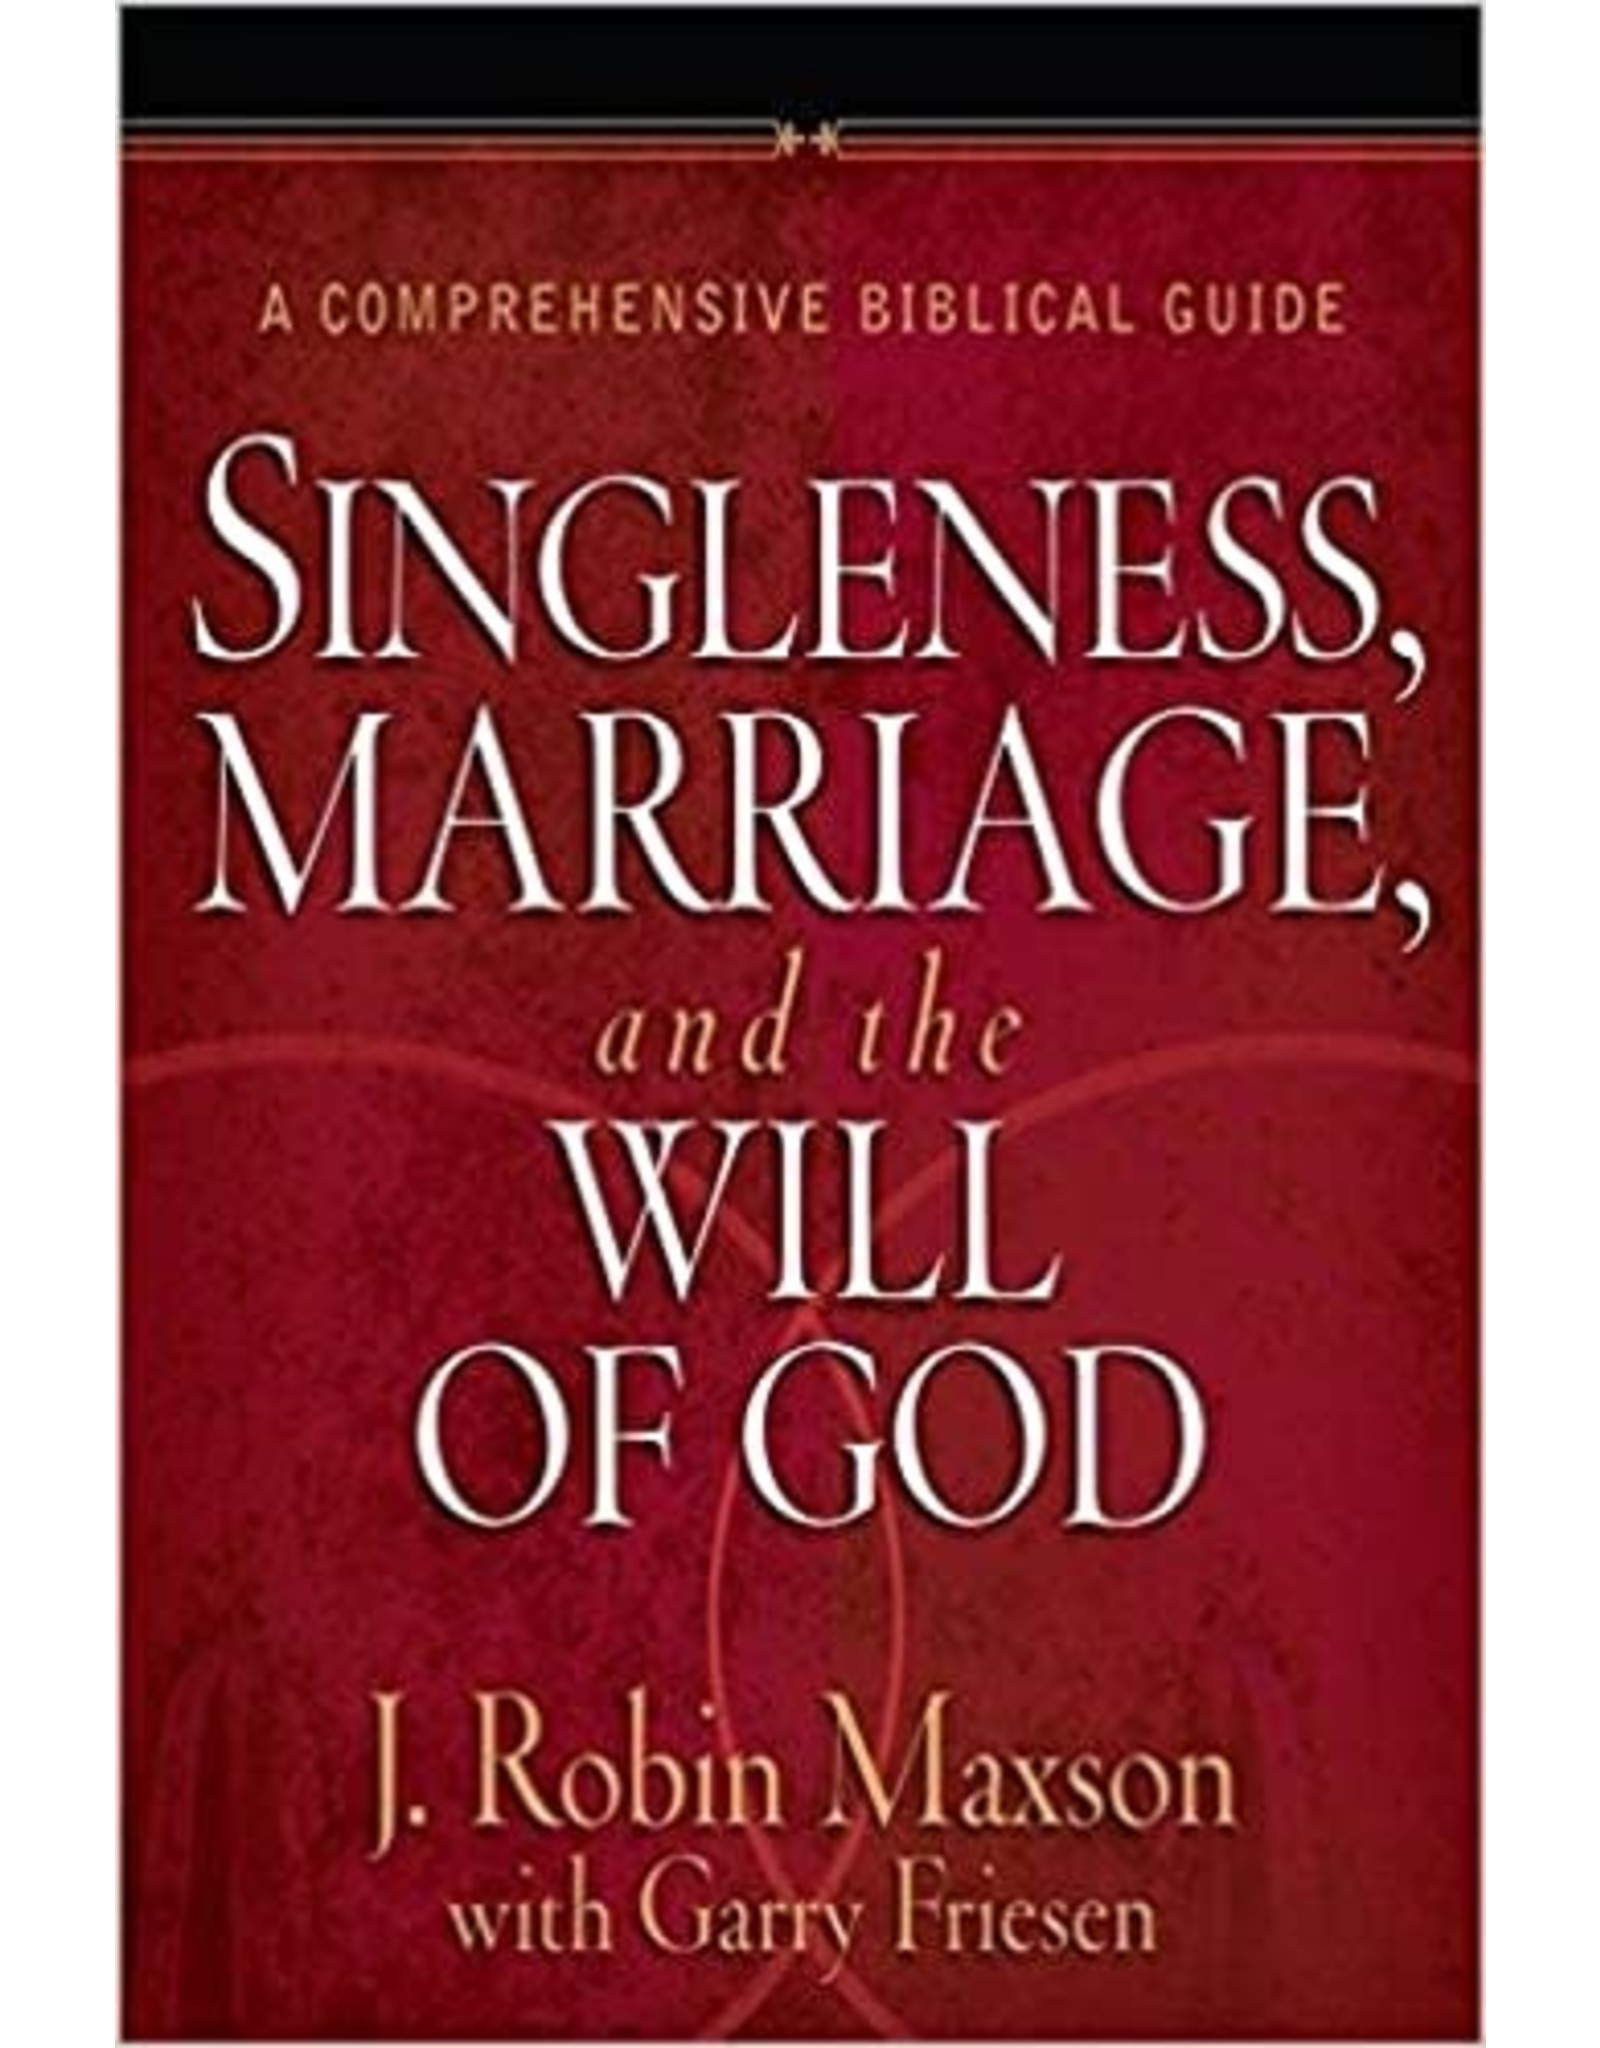 Maxson Singleness, Marriage, and the WIll of God